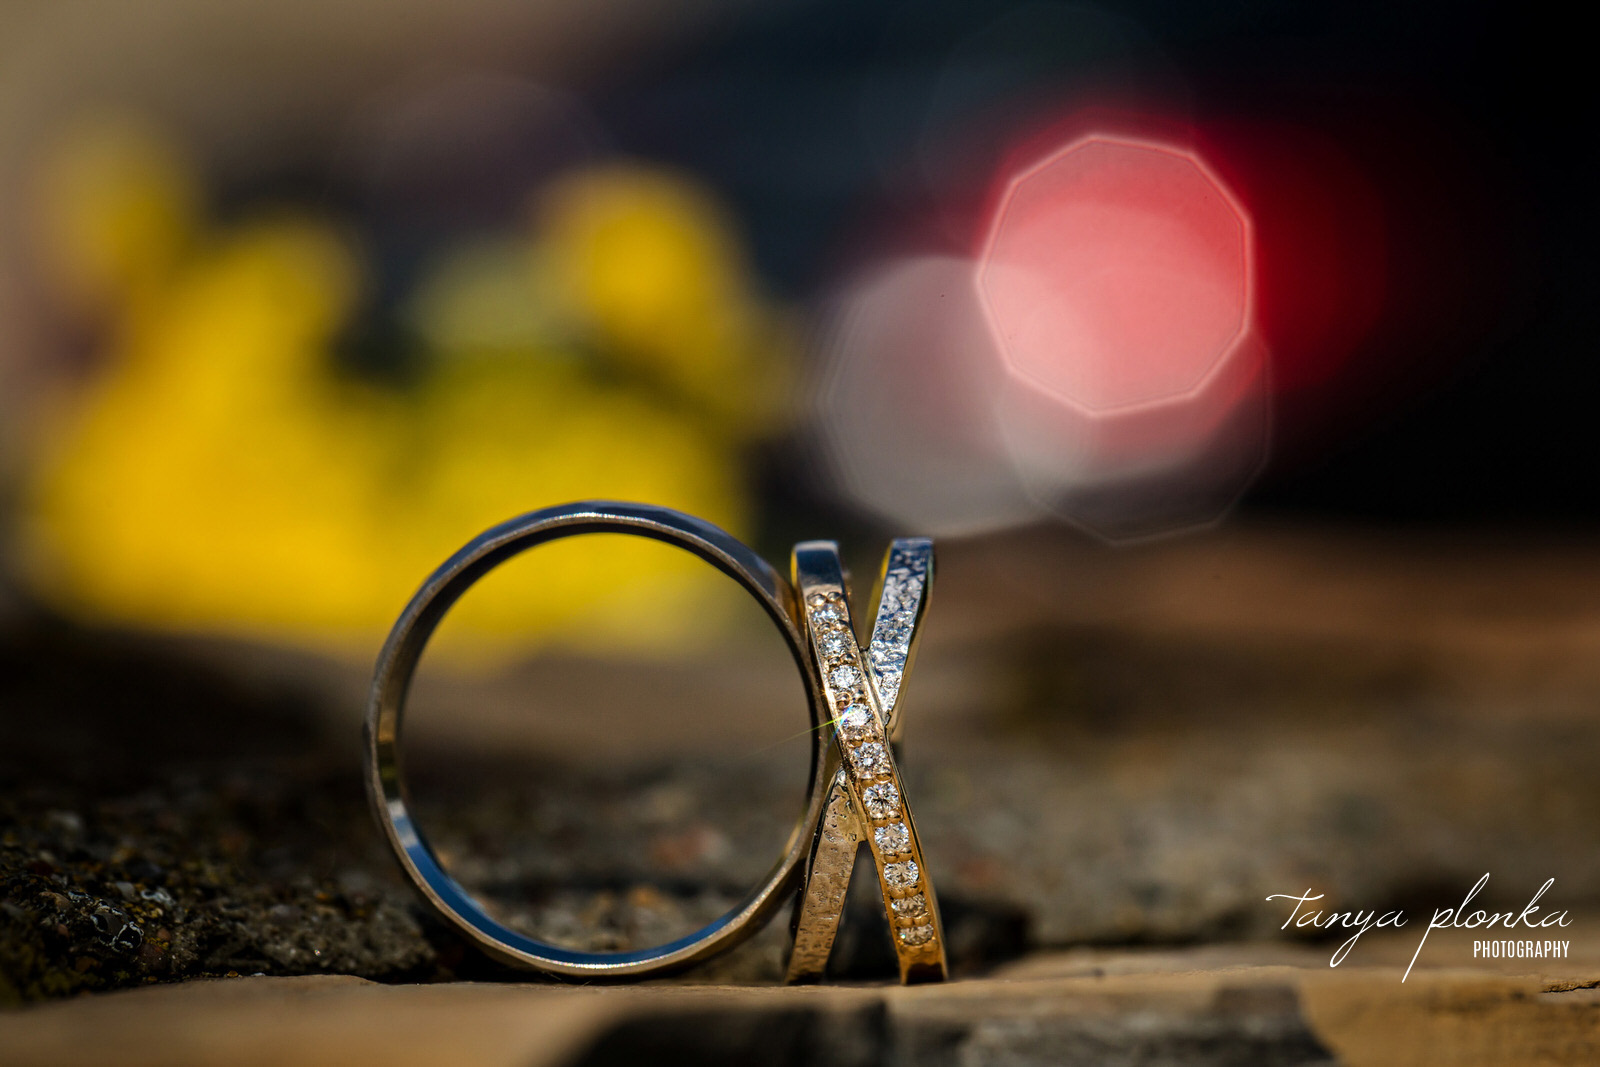 wedding rings are placed on their sides to look like OX